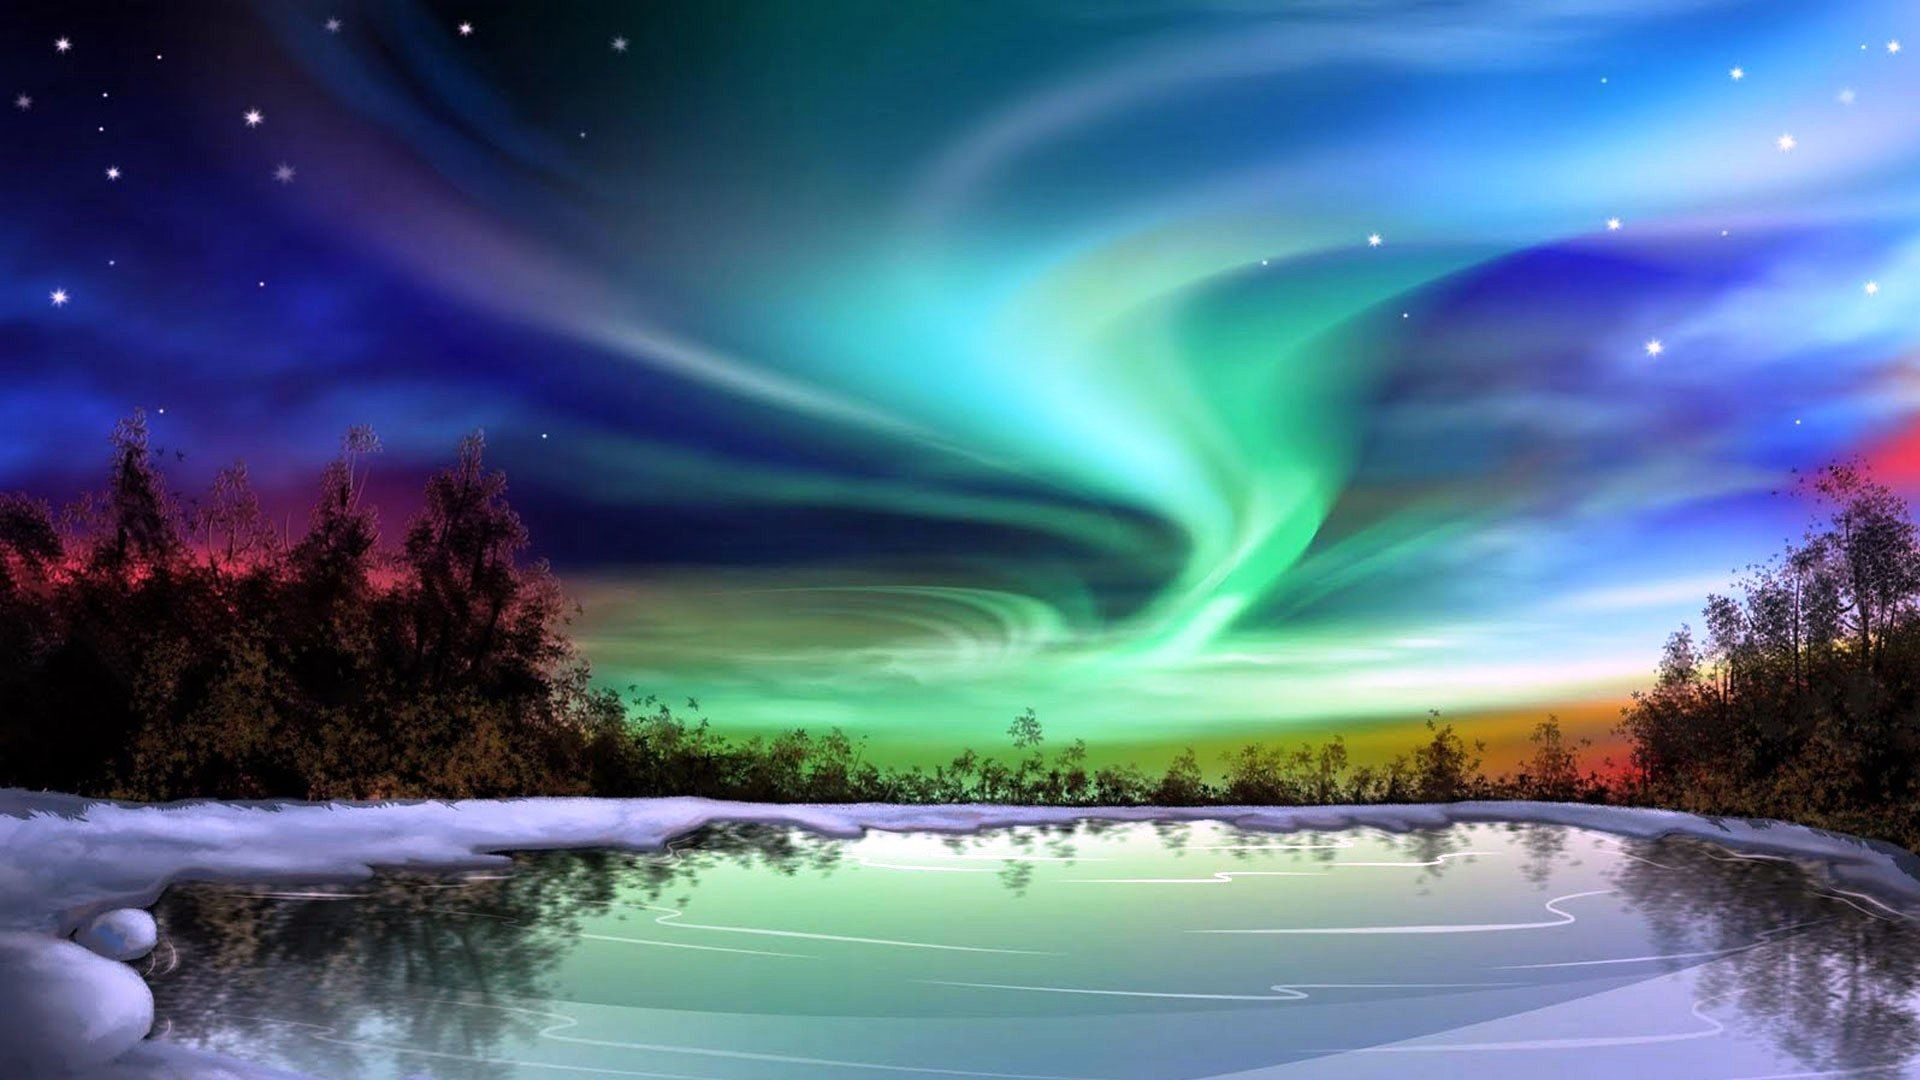 HD Northern Lights Wallpaper (70+ images)